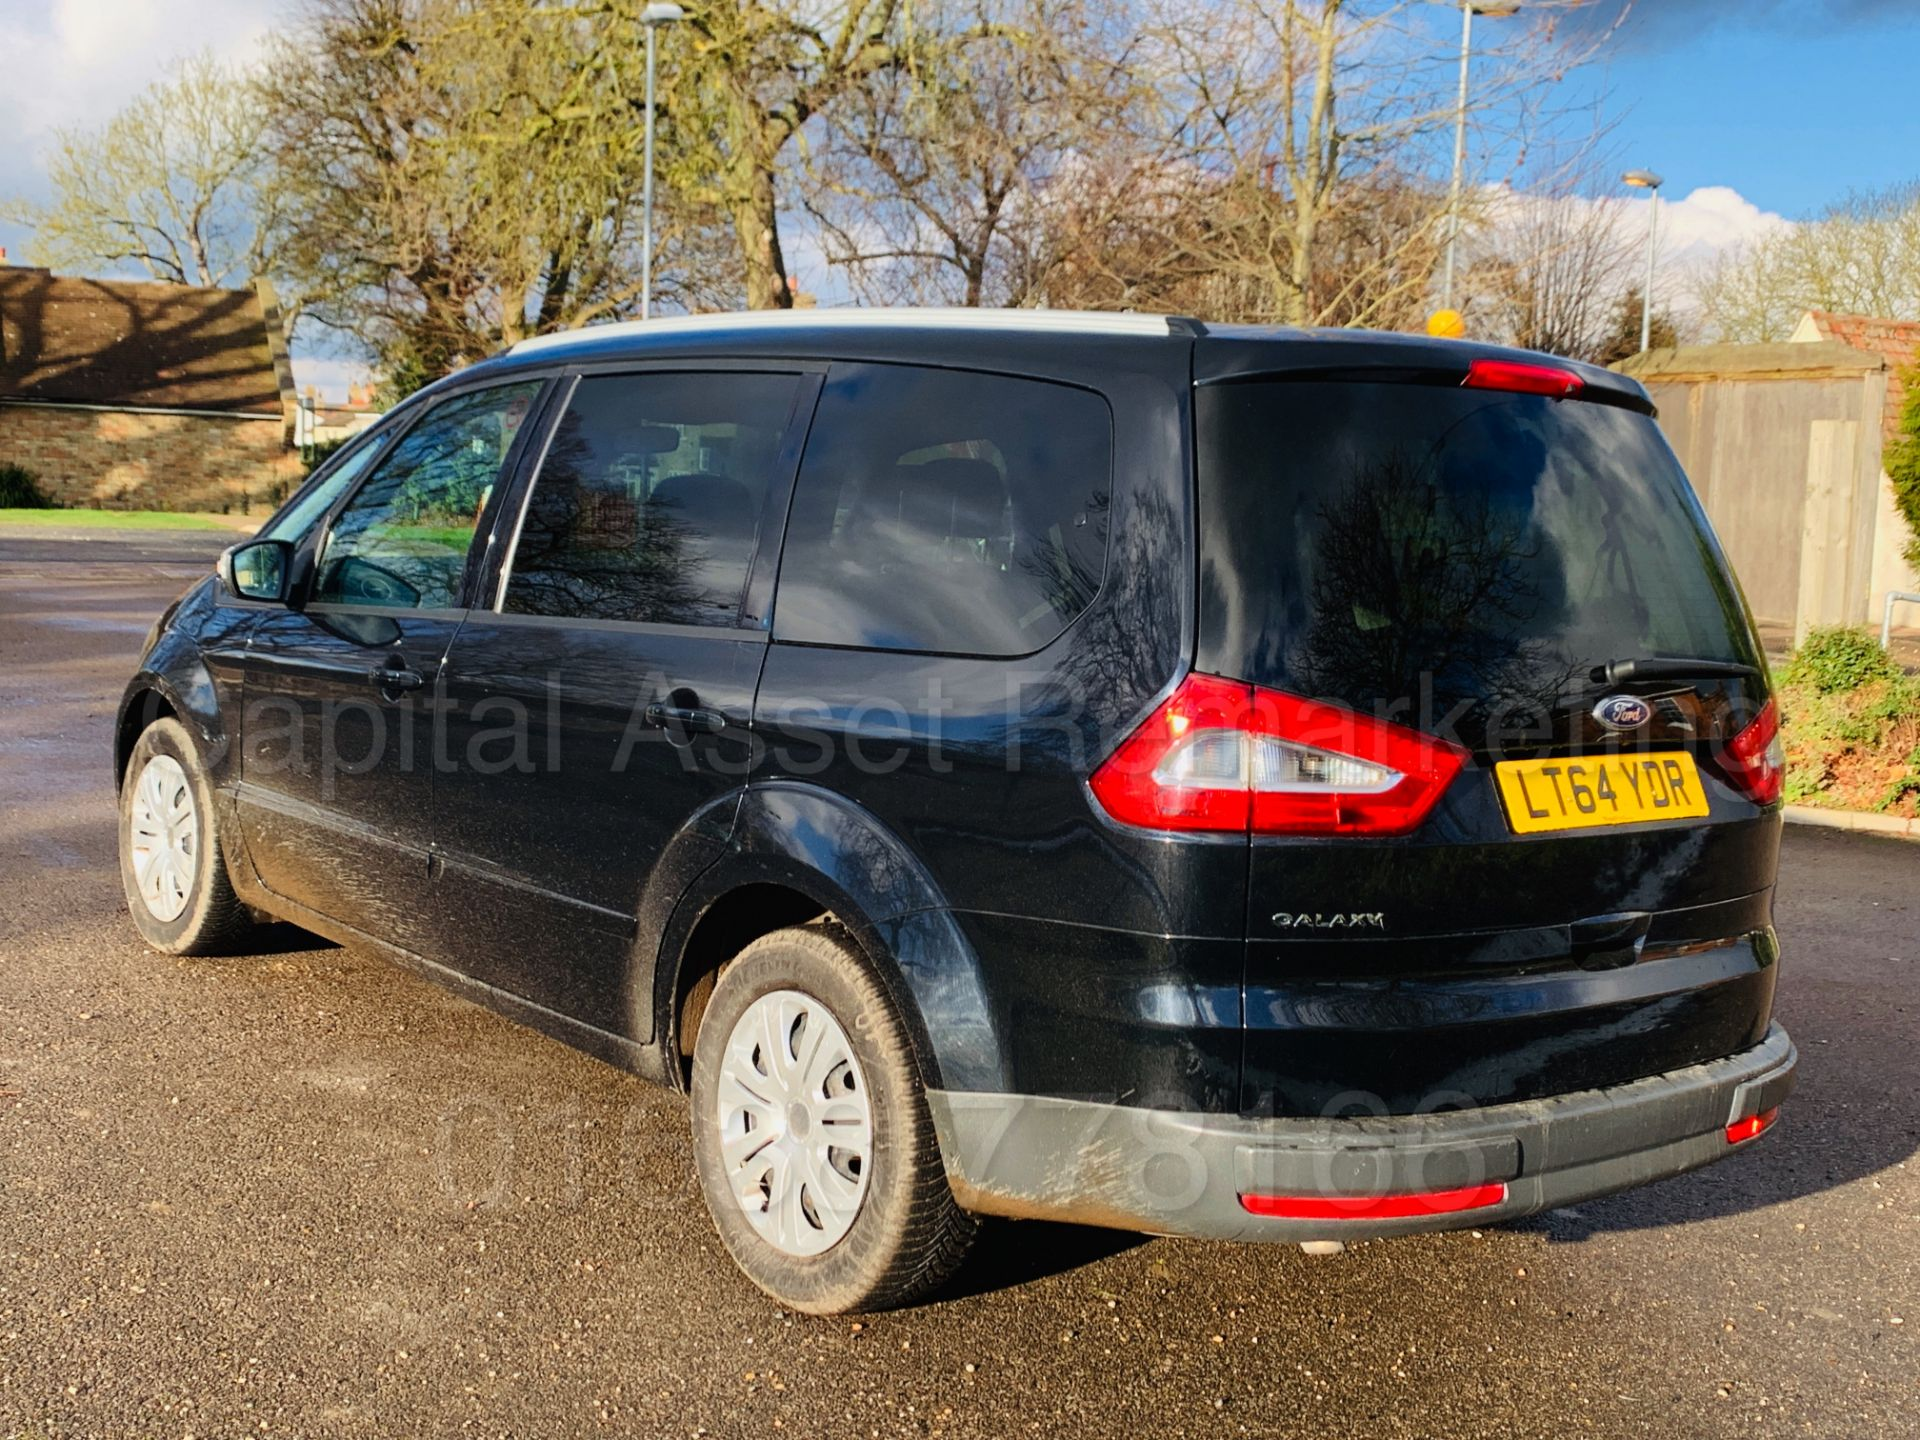 Lot 10 - FORD GALAXY **ZETEC** 7 SEATER MPV (2015 MODEL) 2.0 TDCI - 140 BHP - AUTO POWER SHIFT (1 OWNER)